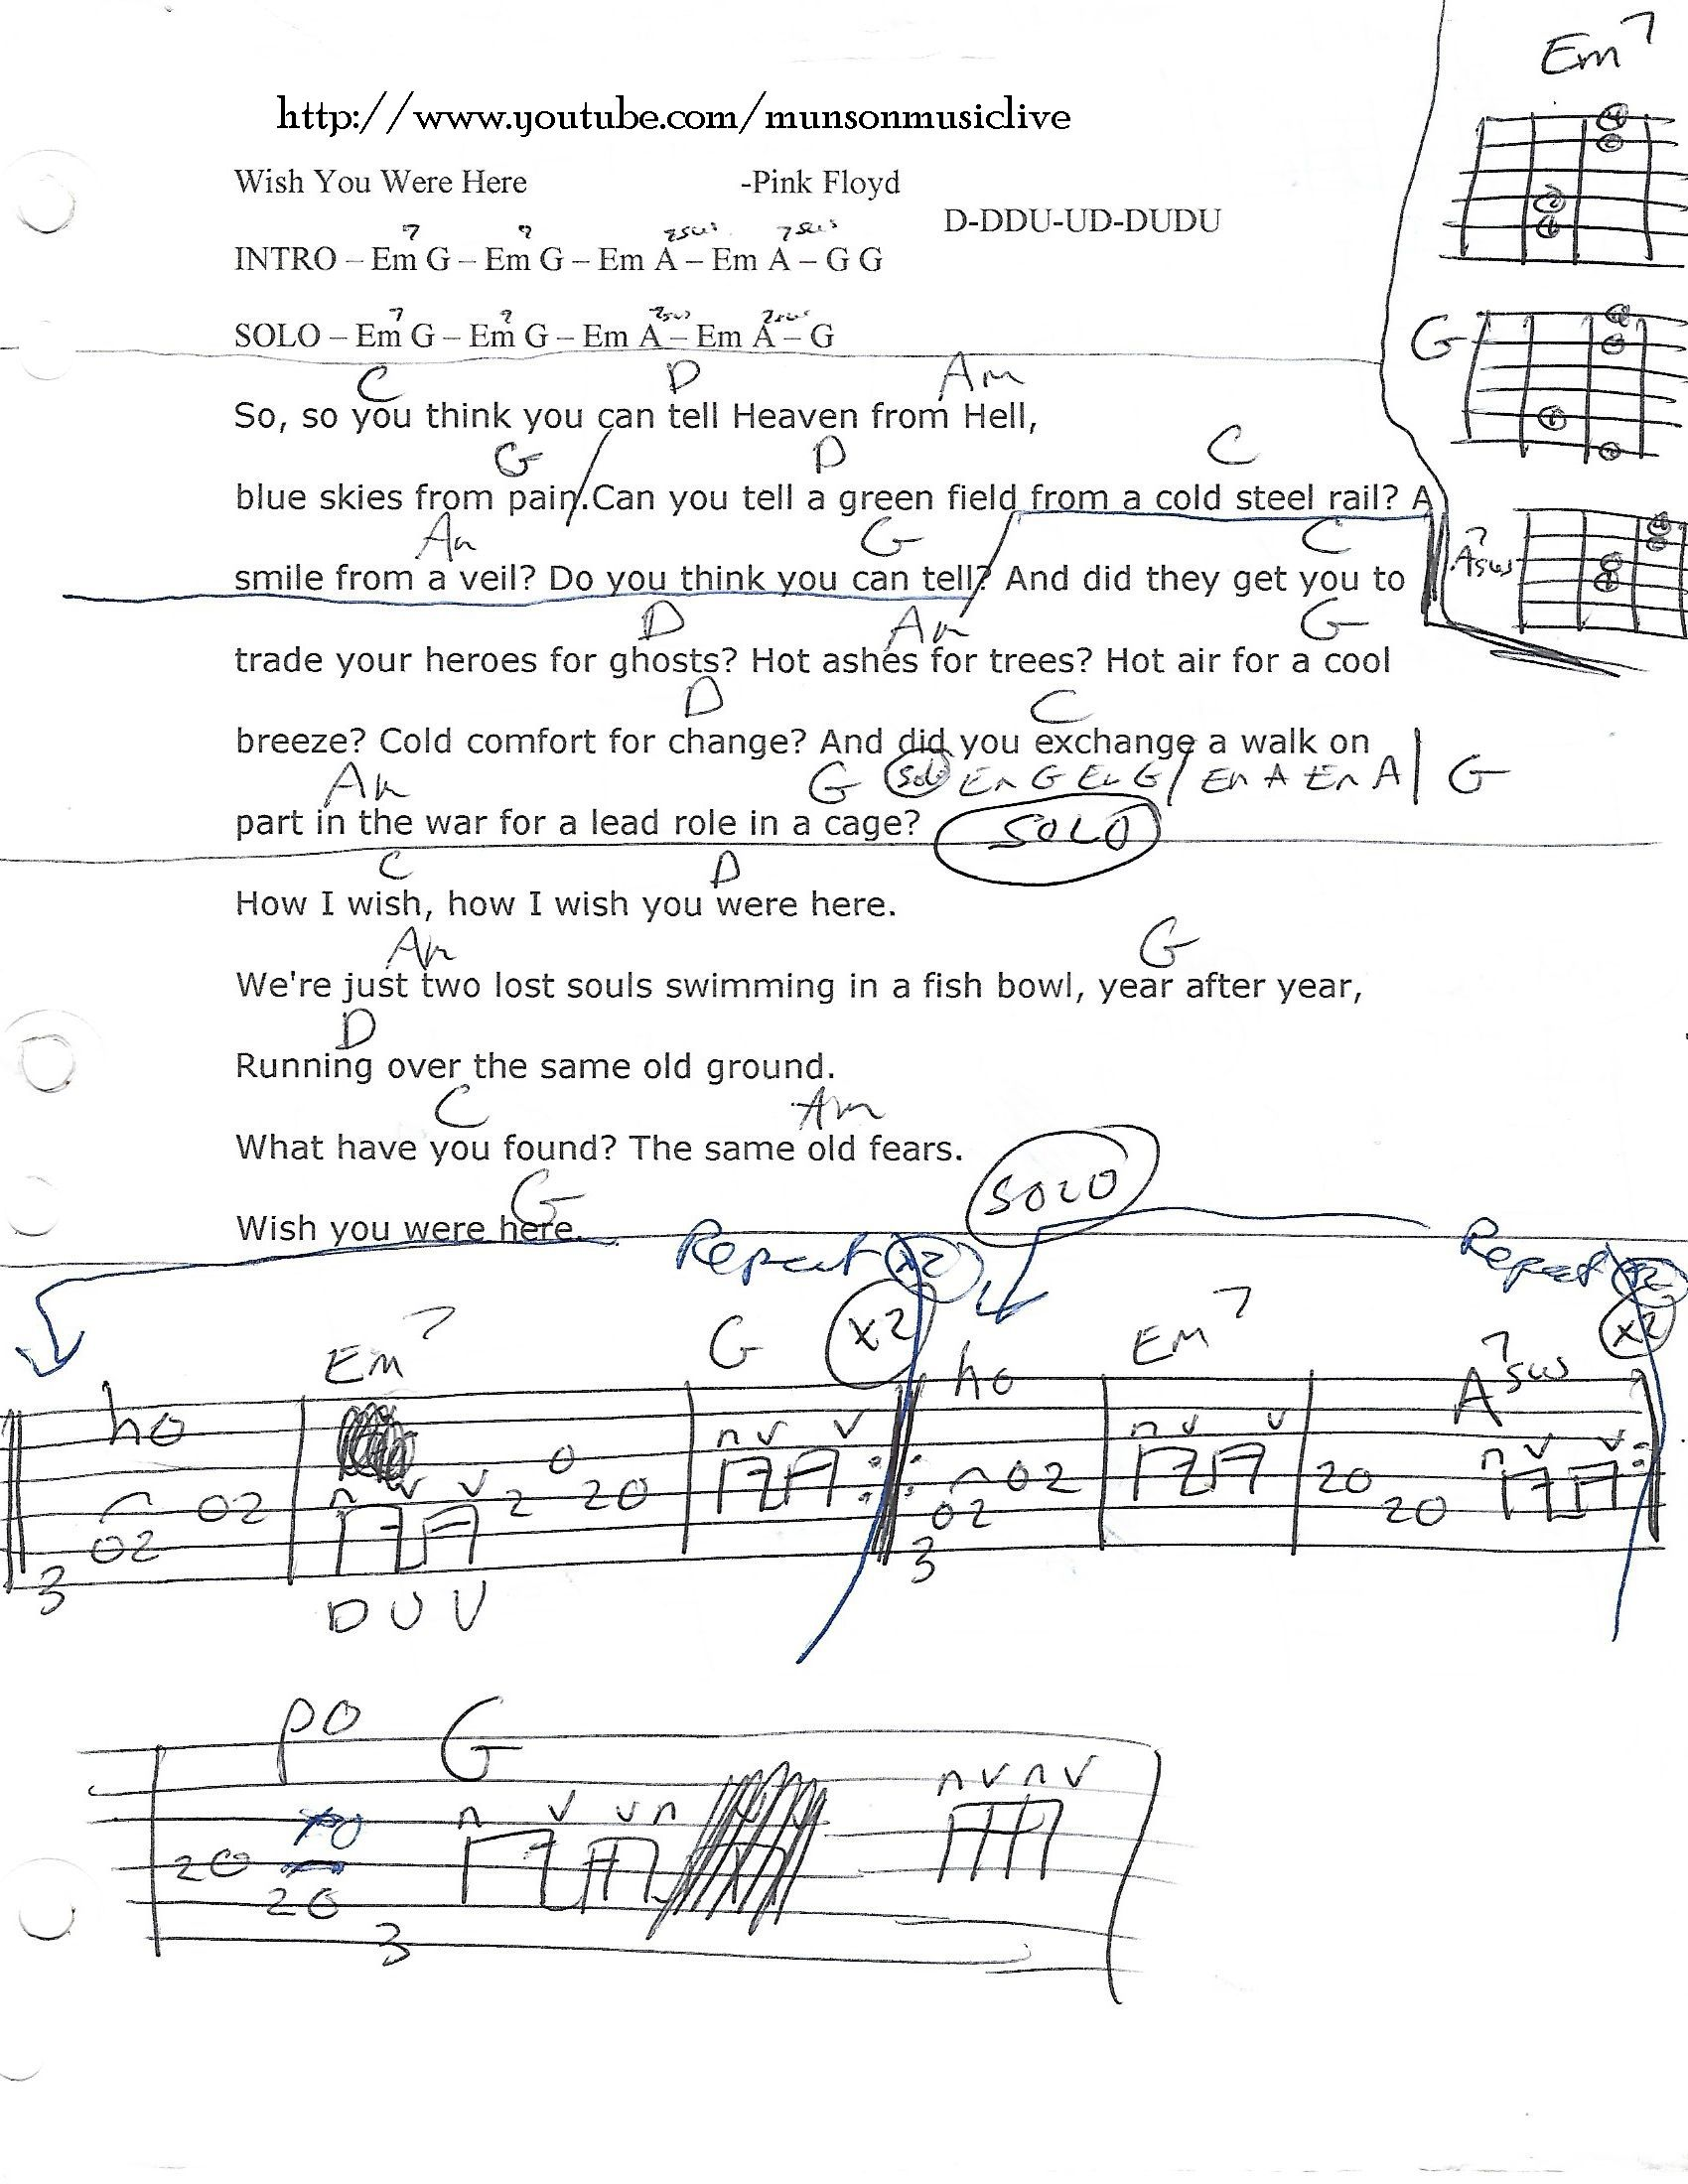 Wish You Were Here Pink Floyd Guitar Chord Chart Guitar Lesson